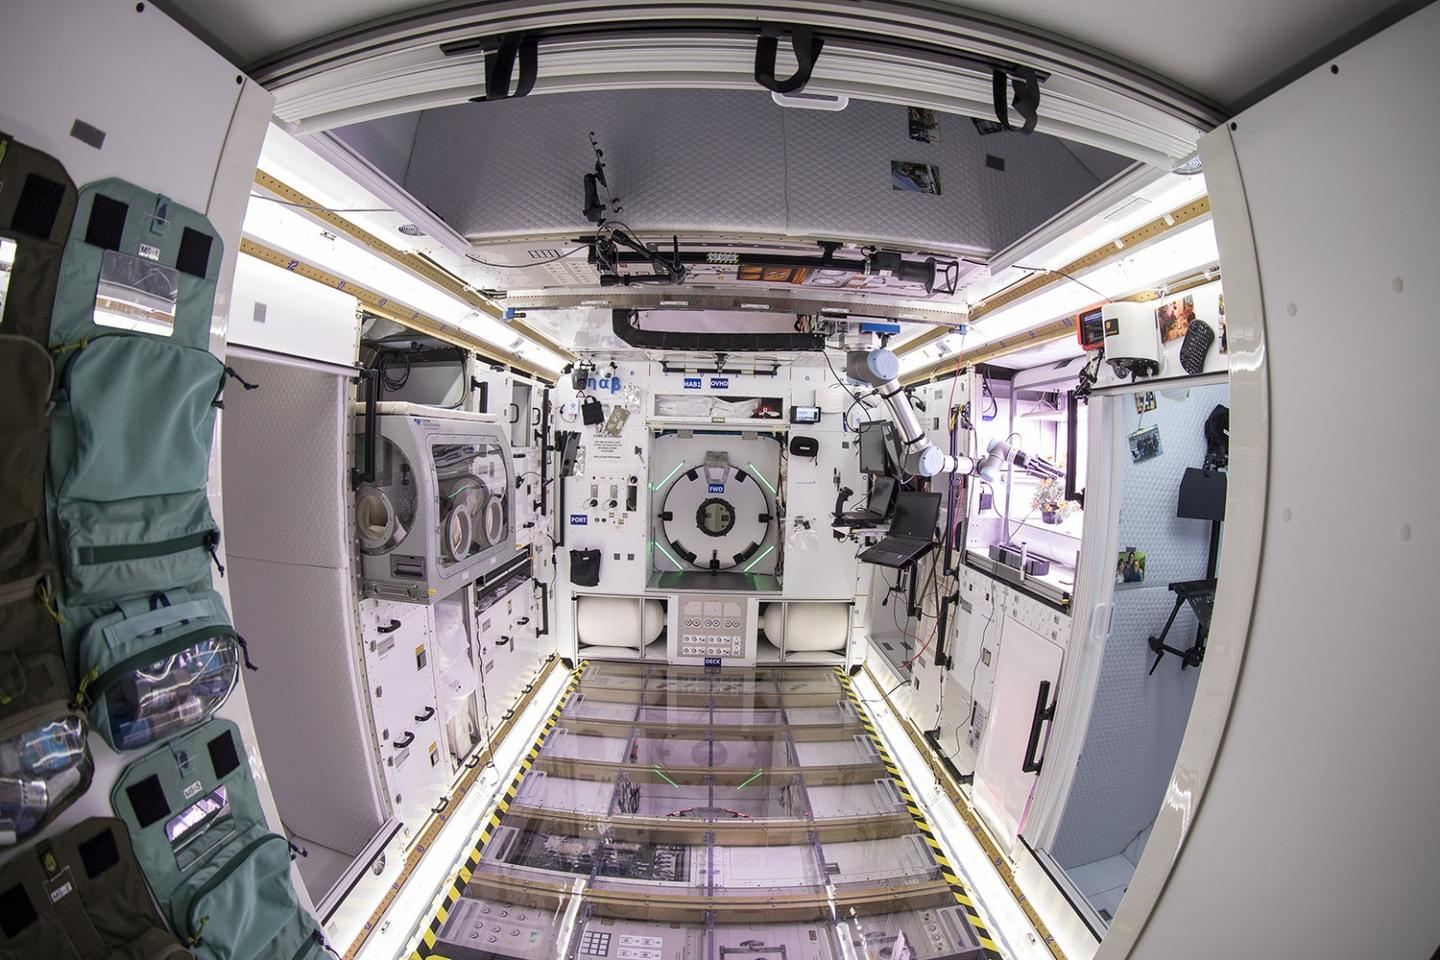 The prototype was built inside a reused Space Shuttle cargo module